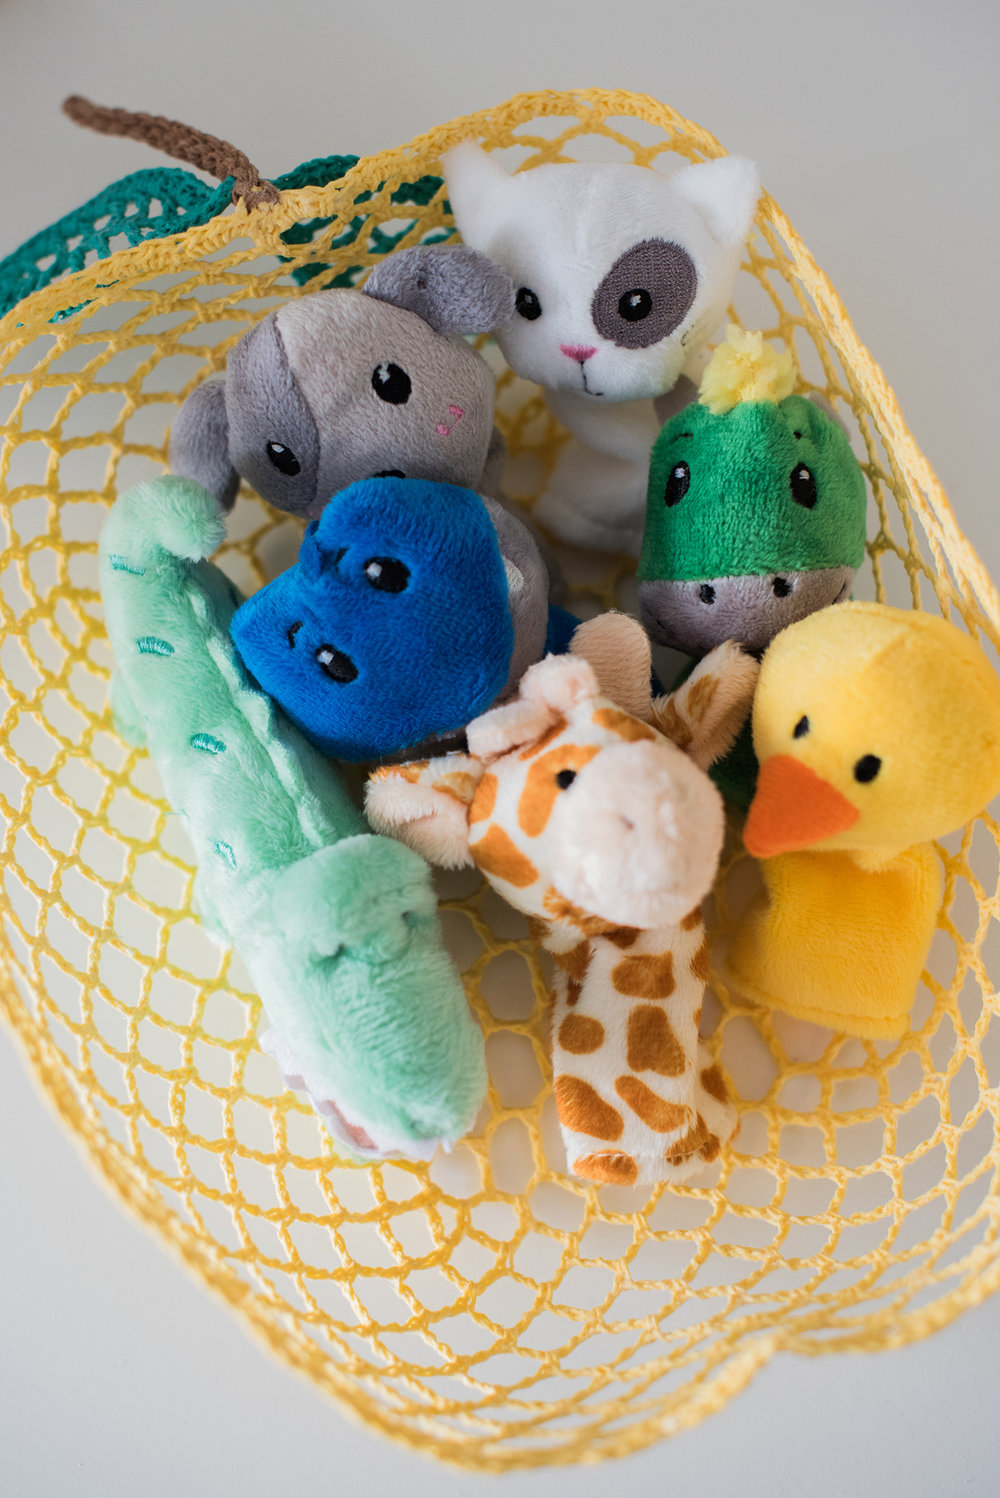 These little finger puppets were a bargain from flying tiger. The children love playing with them before bathtime but there is always an agreement over who gets the giraffe?!